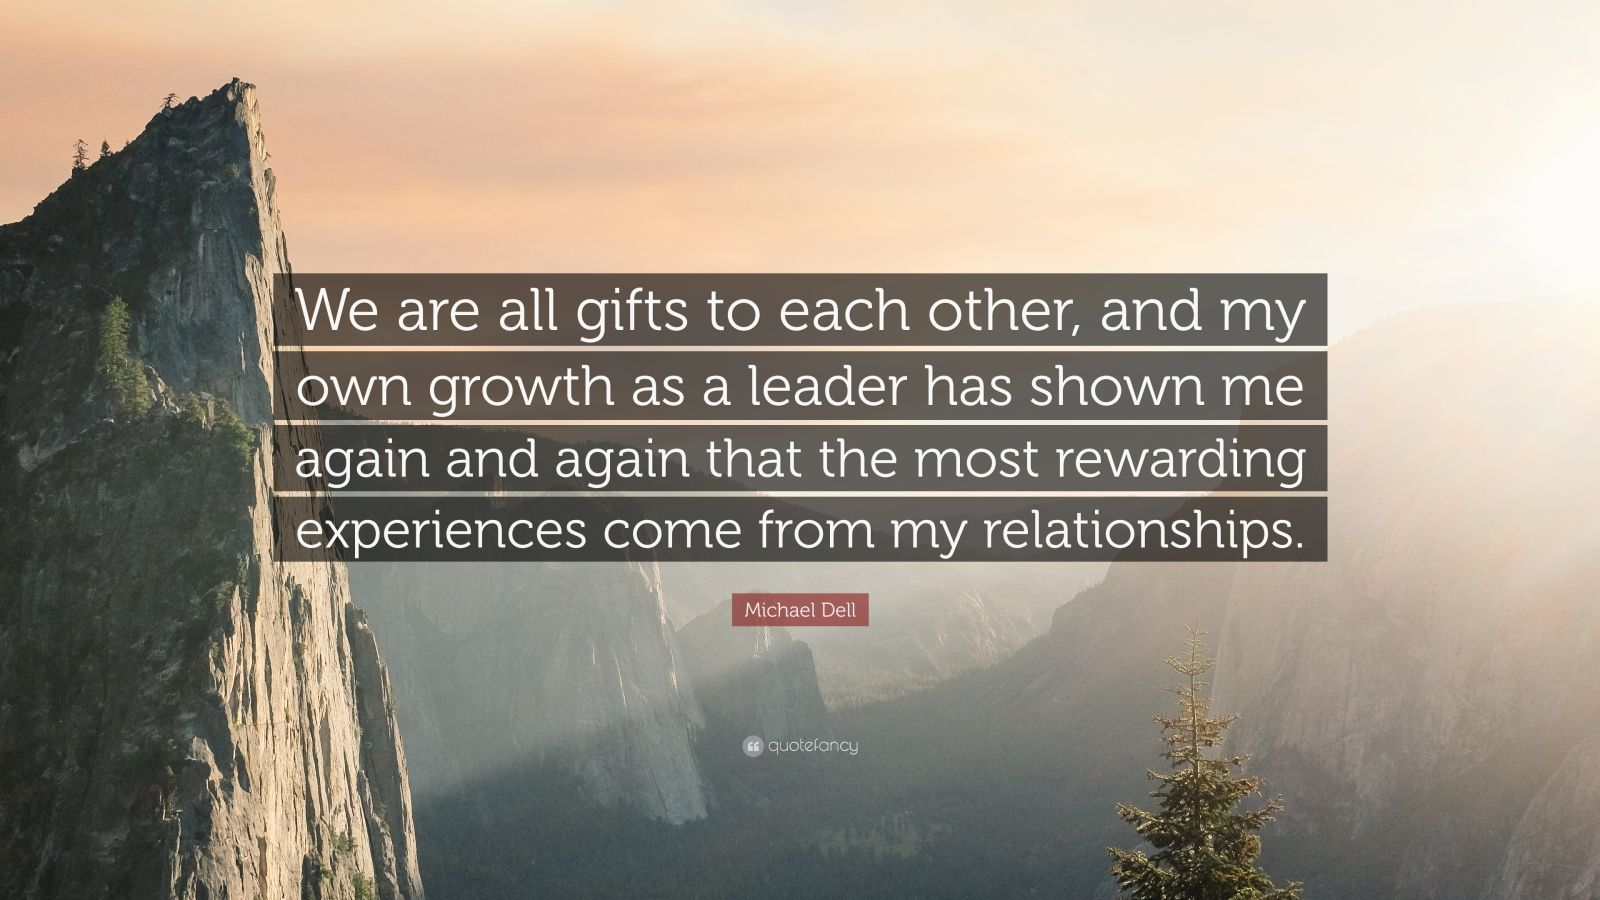 """Michael Dell Quote: """"We are all gifts to each other, and my own growth as a leader has shown me again and again that the most rewarding experiences come from my relationships."""""""